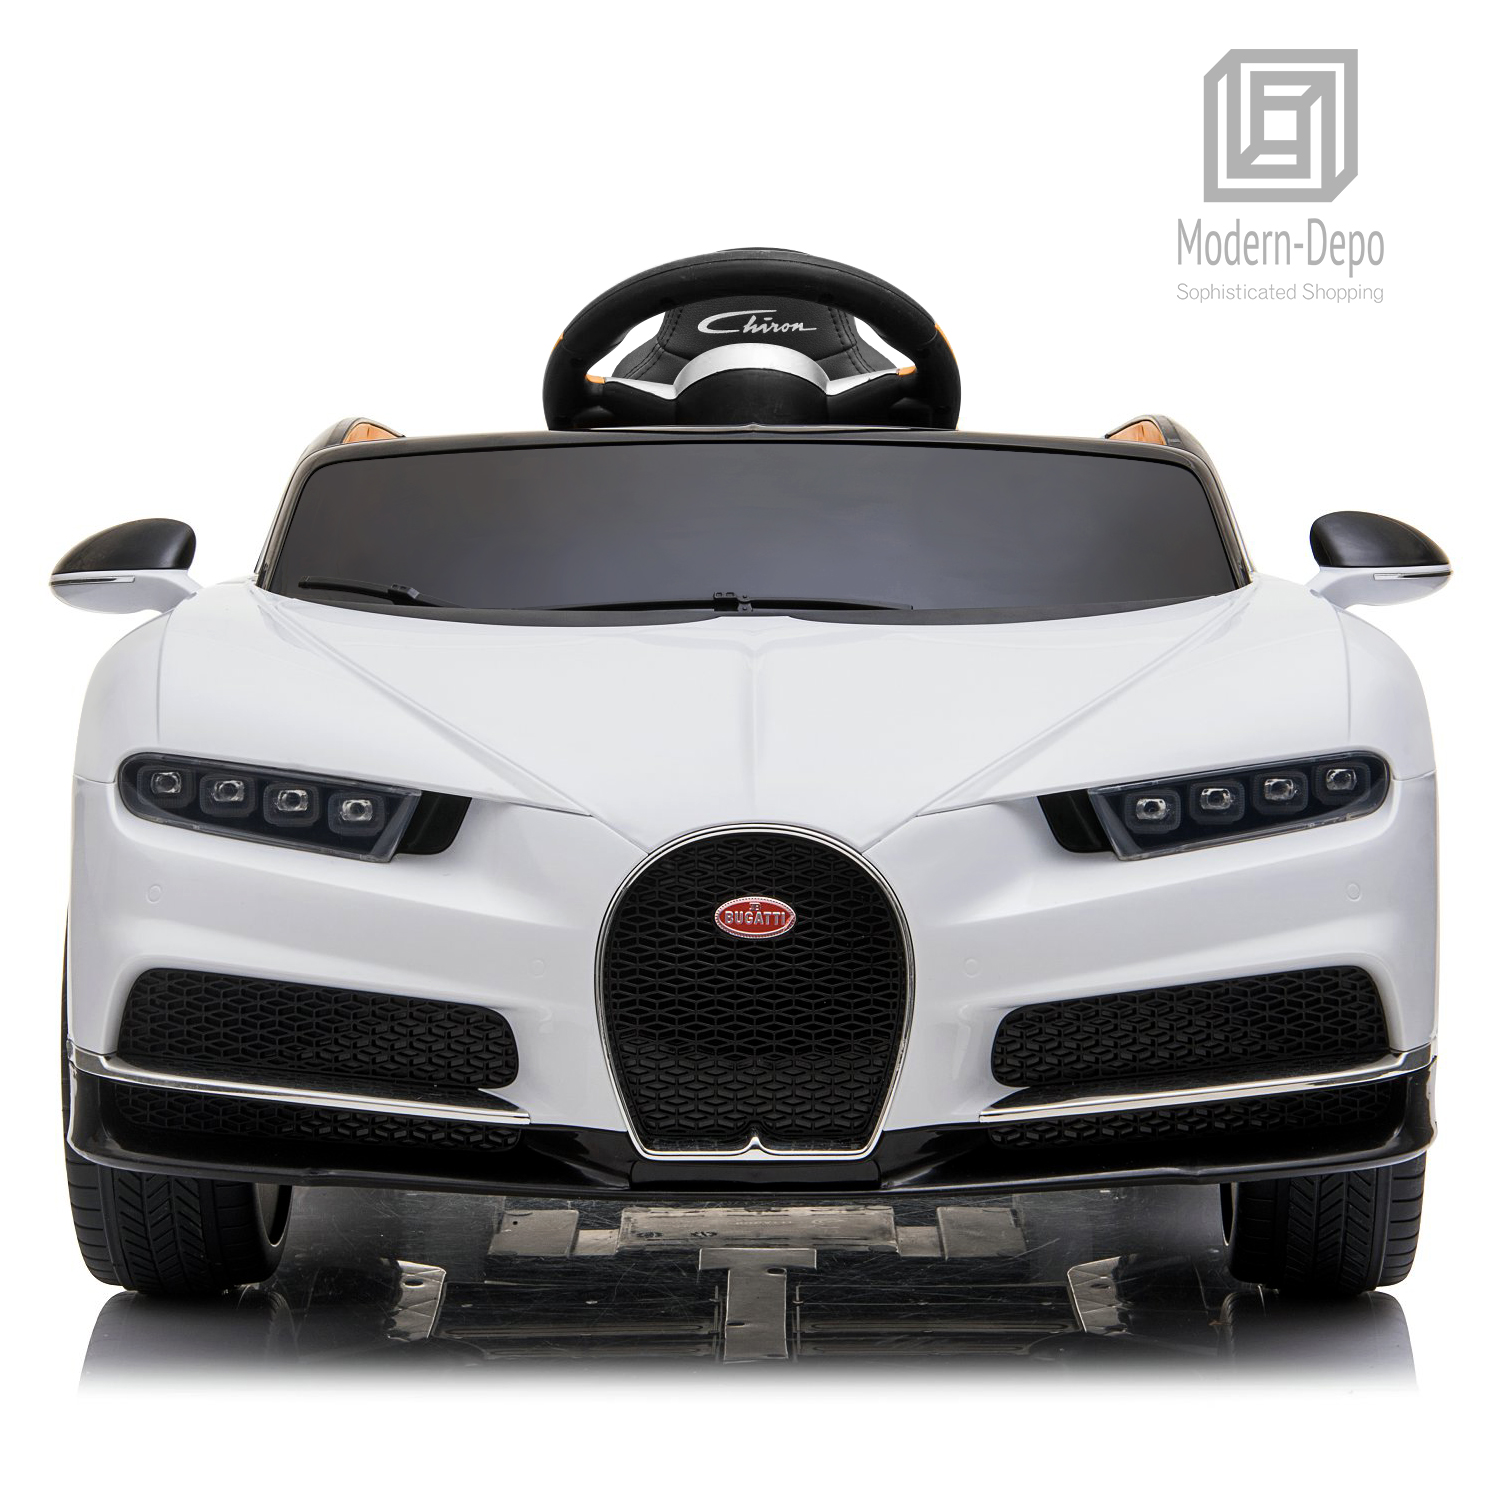 Bugatti-Chiron-12V-Kids-Ride-On-Car-with-Remote-Control-High-Speed-Motor miniature 37